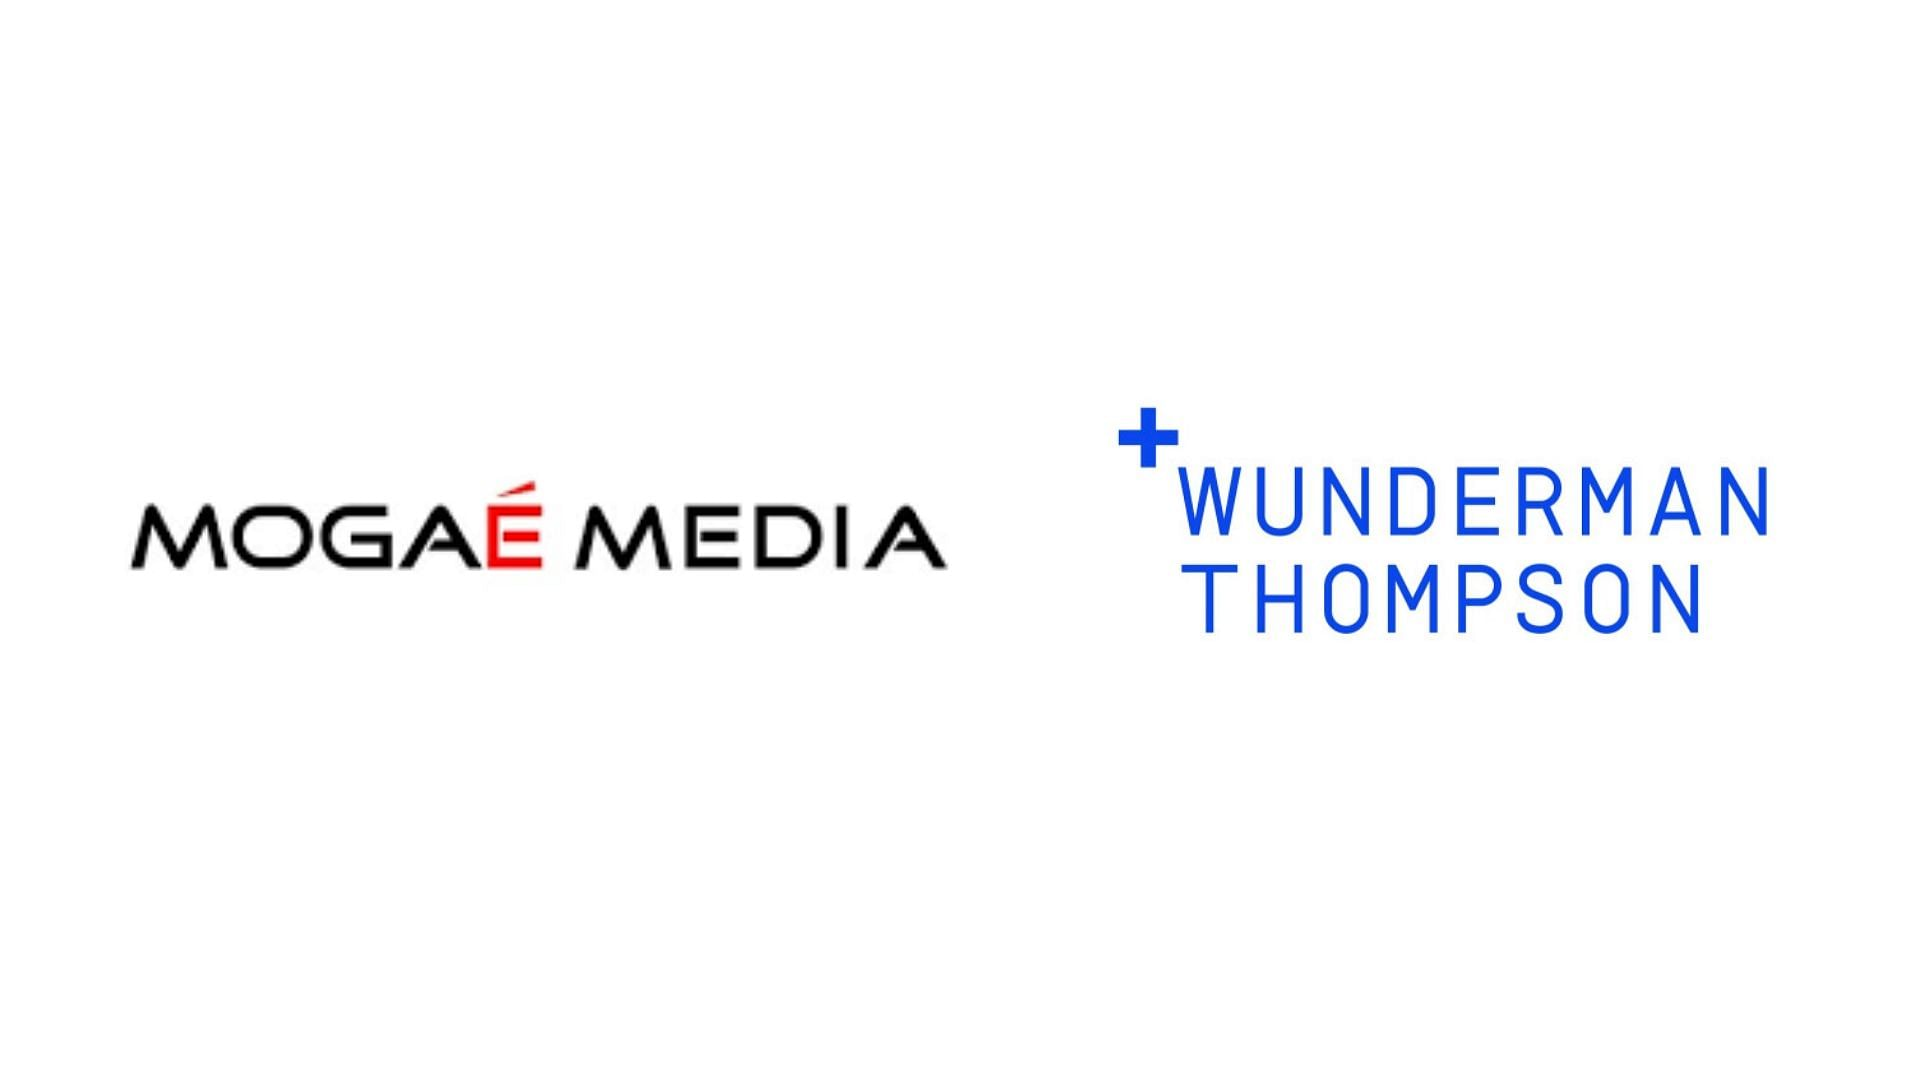 mogae media wunderman thompson?blur=25